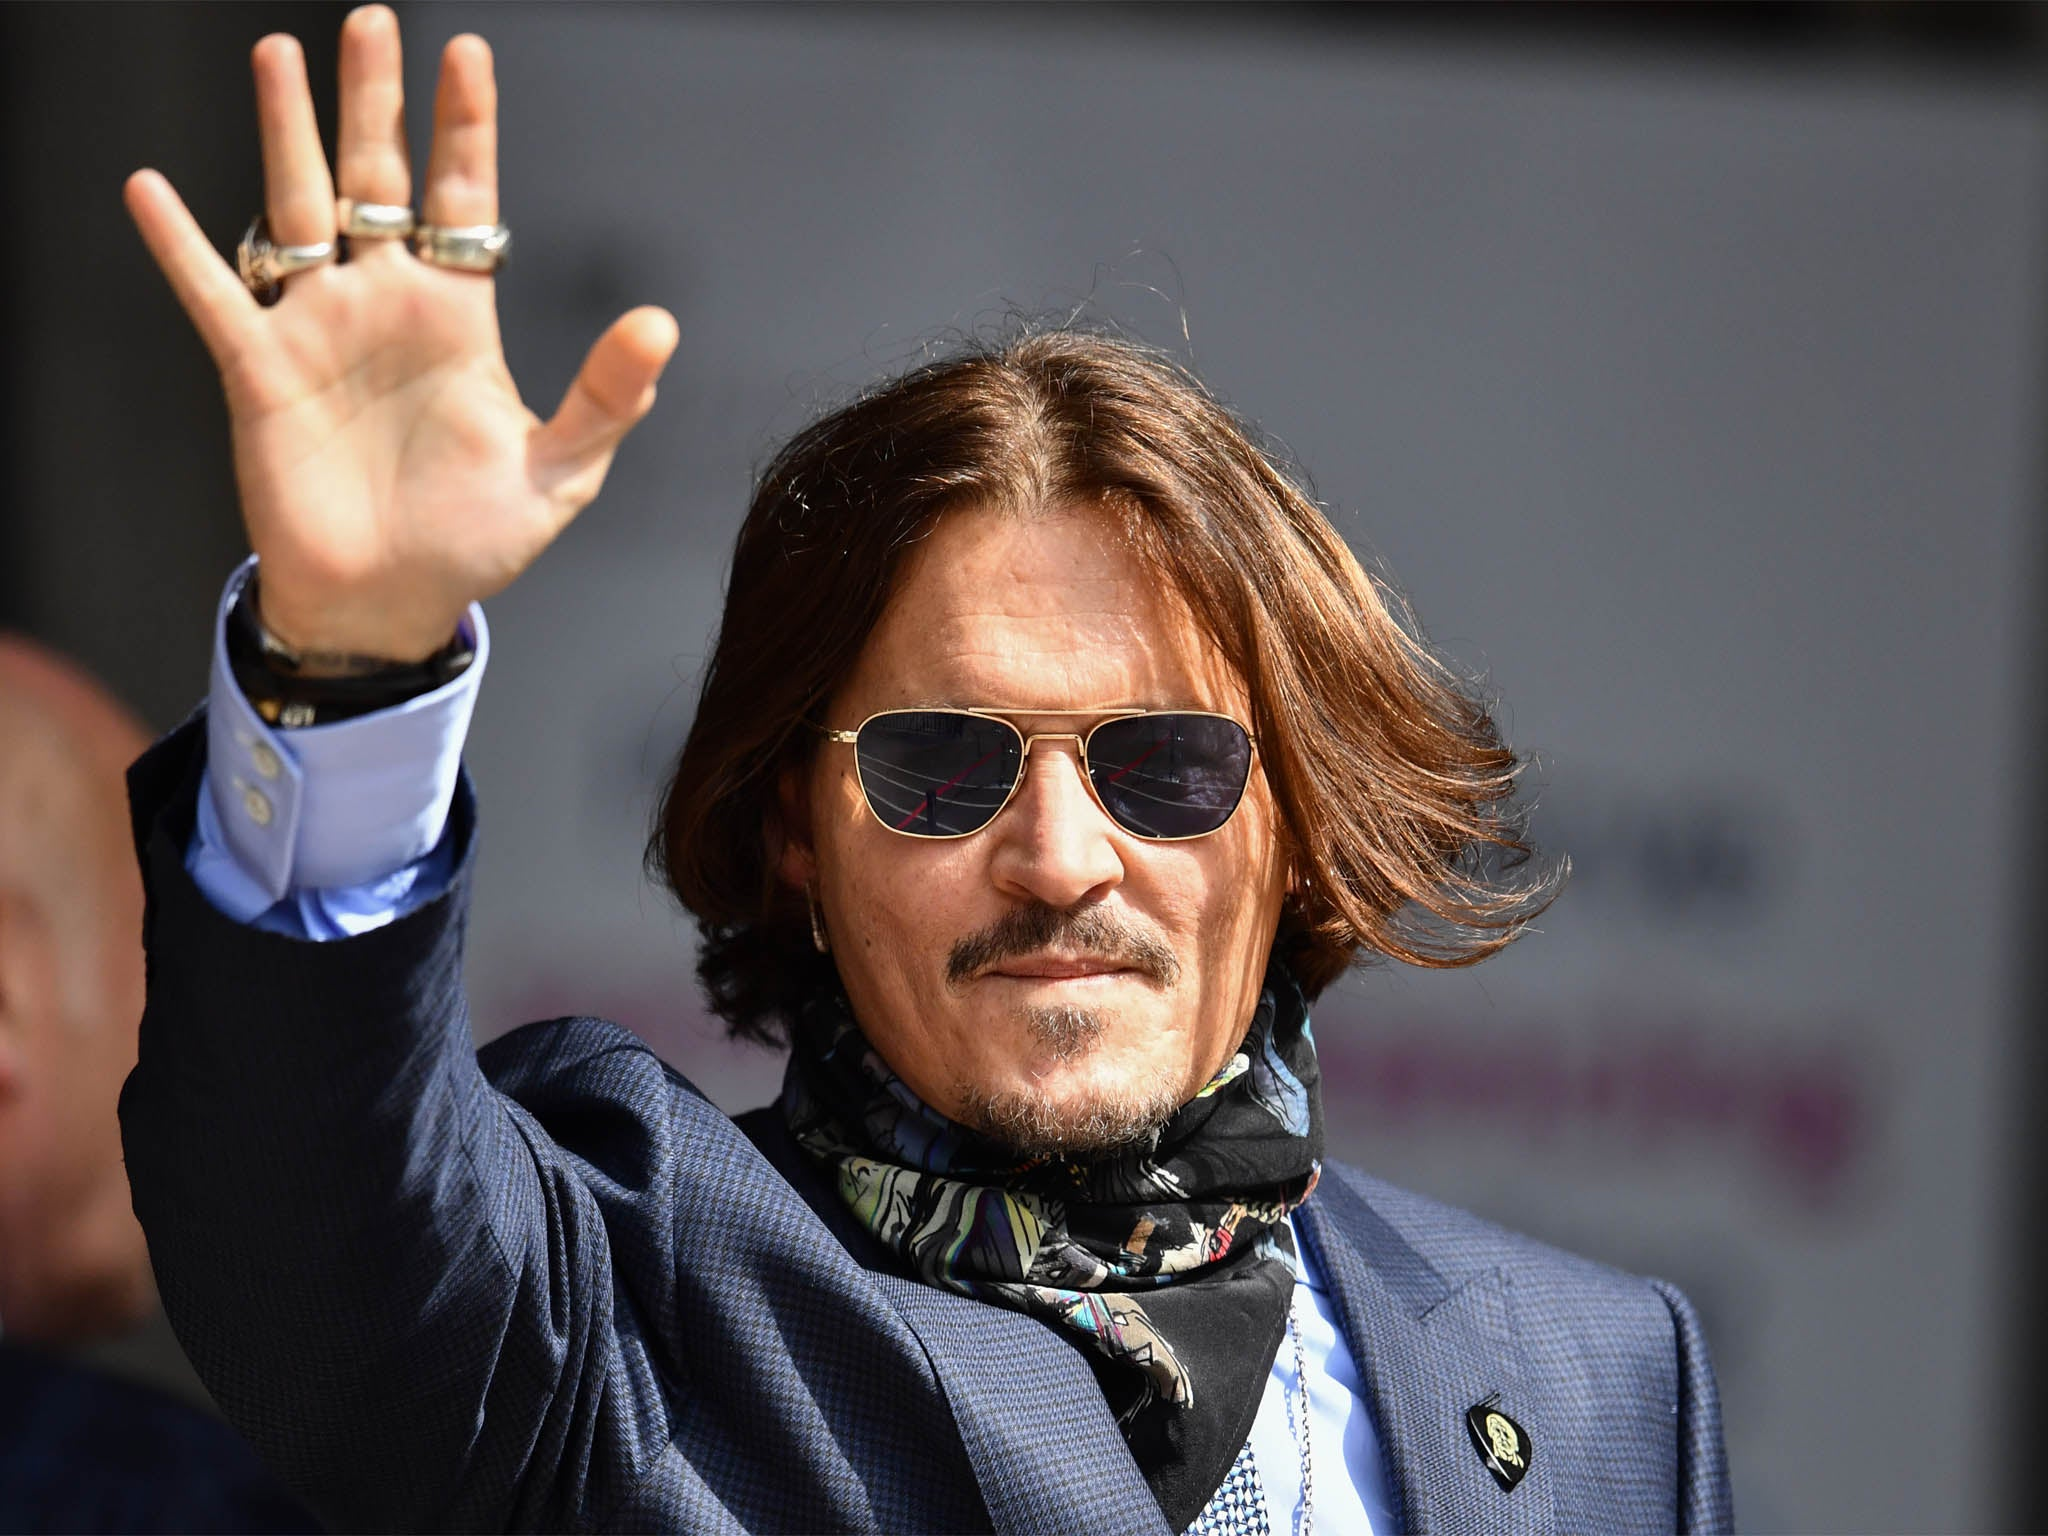 Johnny Depp Leaves Fantastic Beasts Franchise As He Breaks Silence On Libel Defeat The Independent